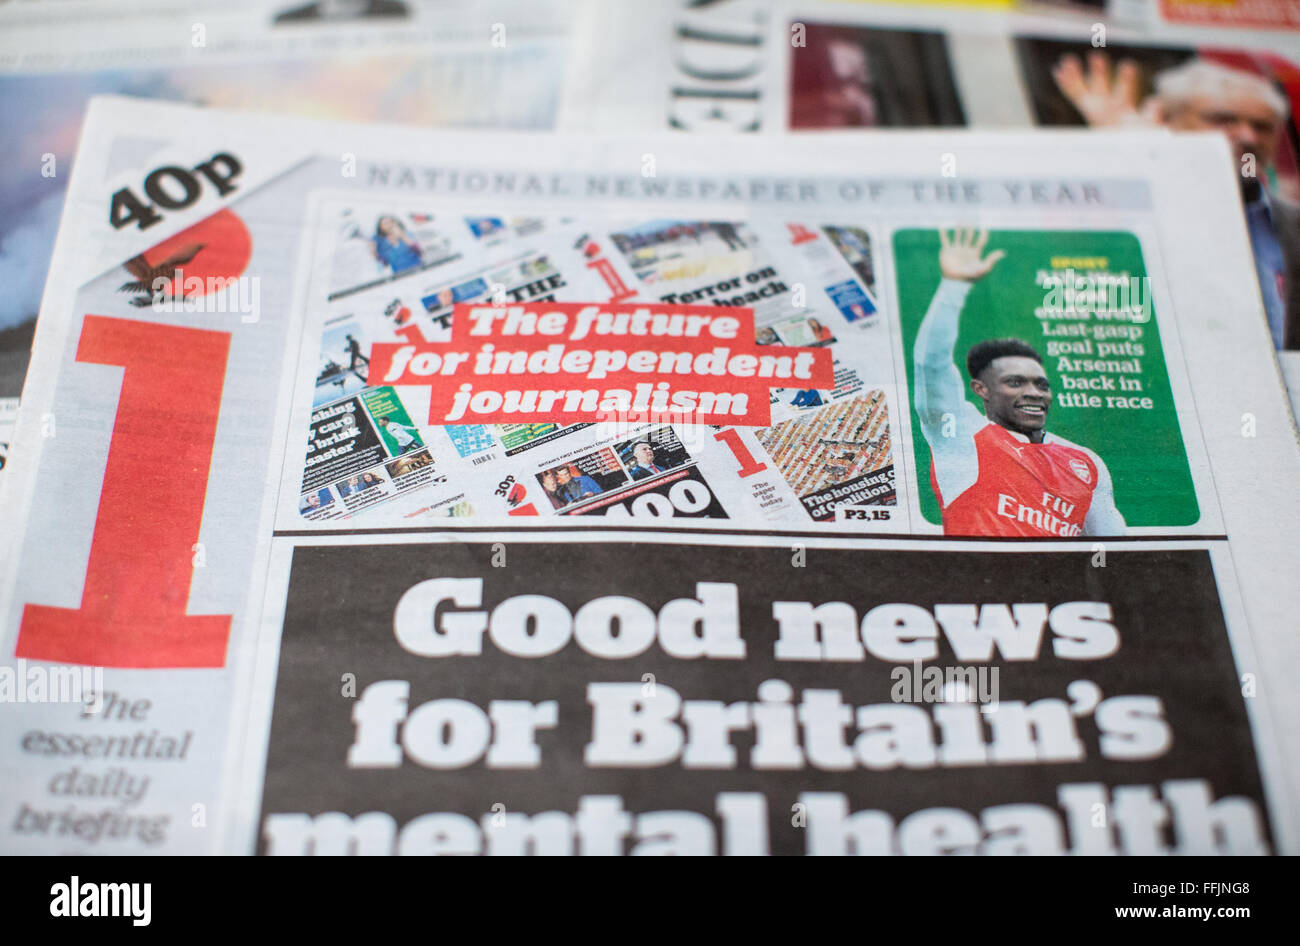 The i Newspaper,a concise version of its sister broadsheet,The Independent.The i Newspaper is making a profit. - Stock Image